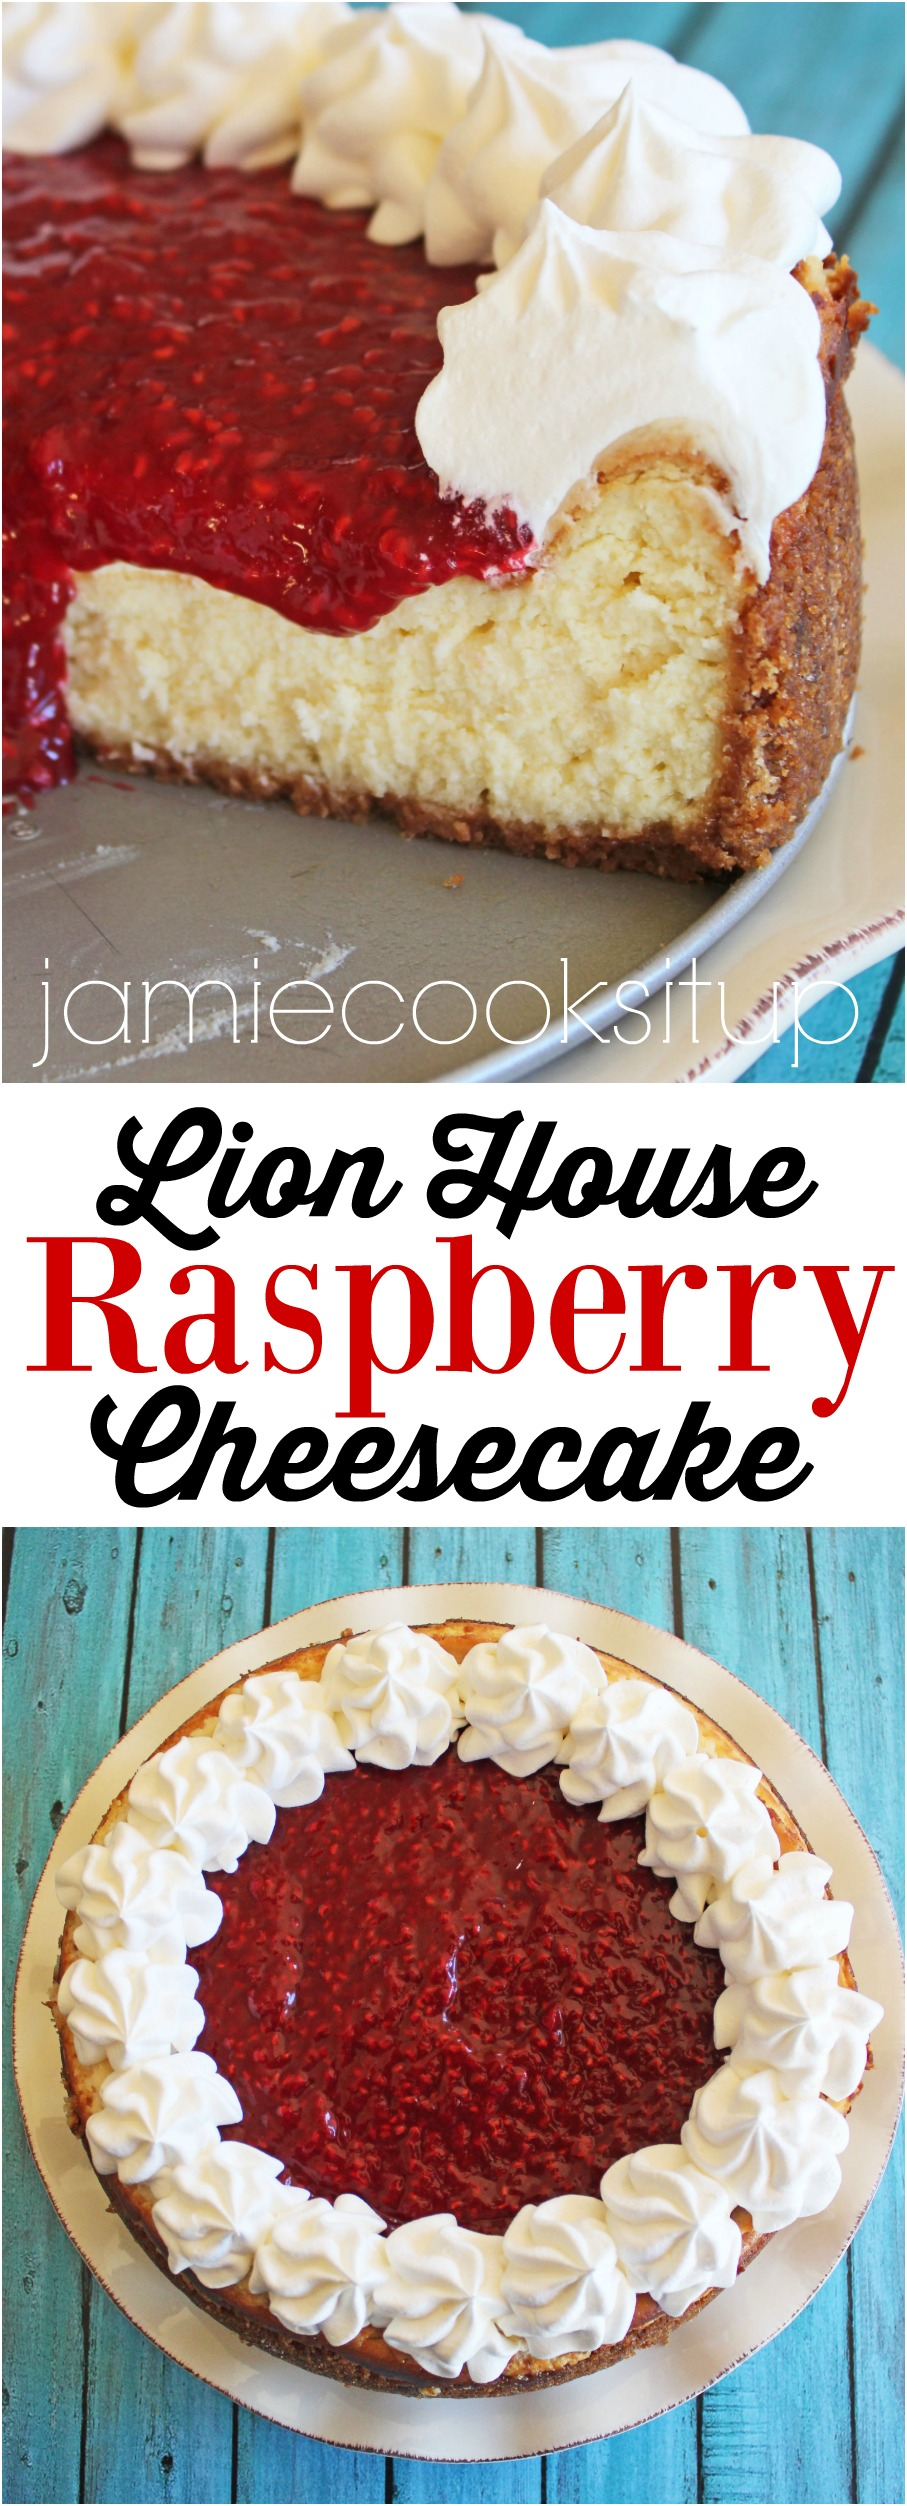 lion-house-raspberry-cheesecake-from-jamie-cooks-it-up